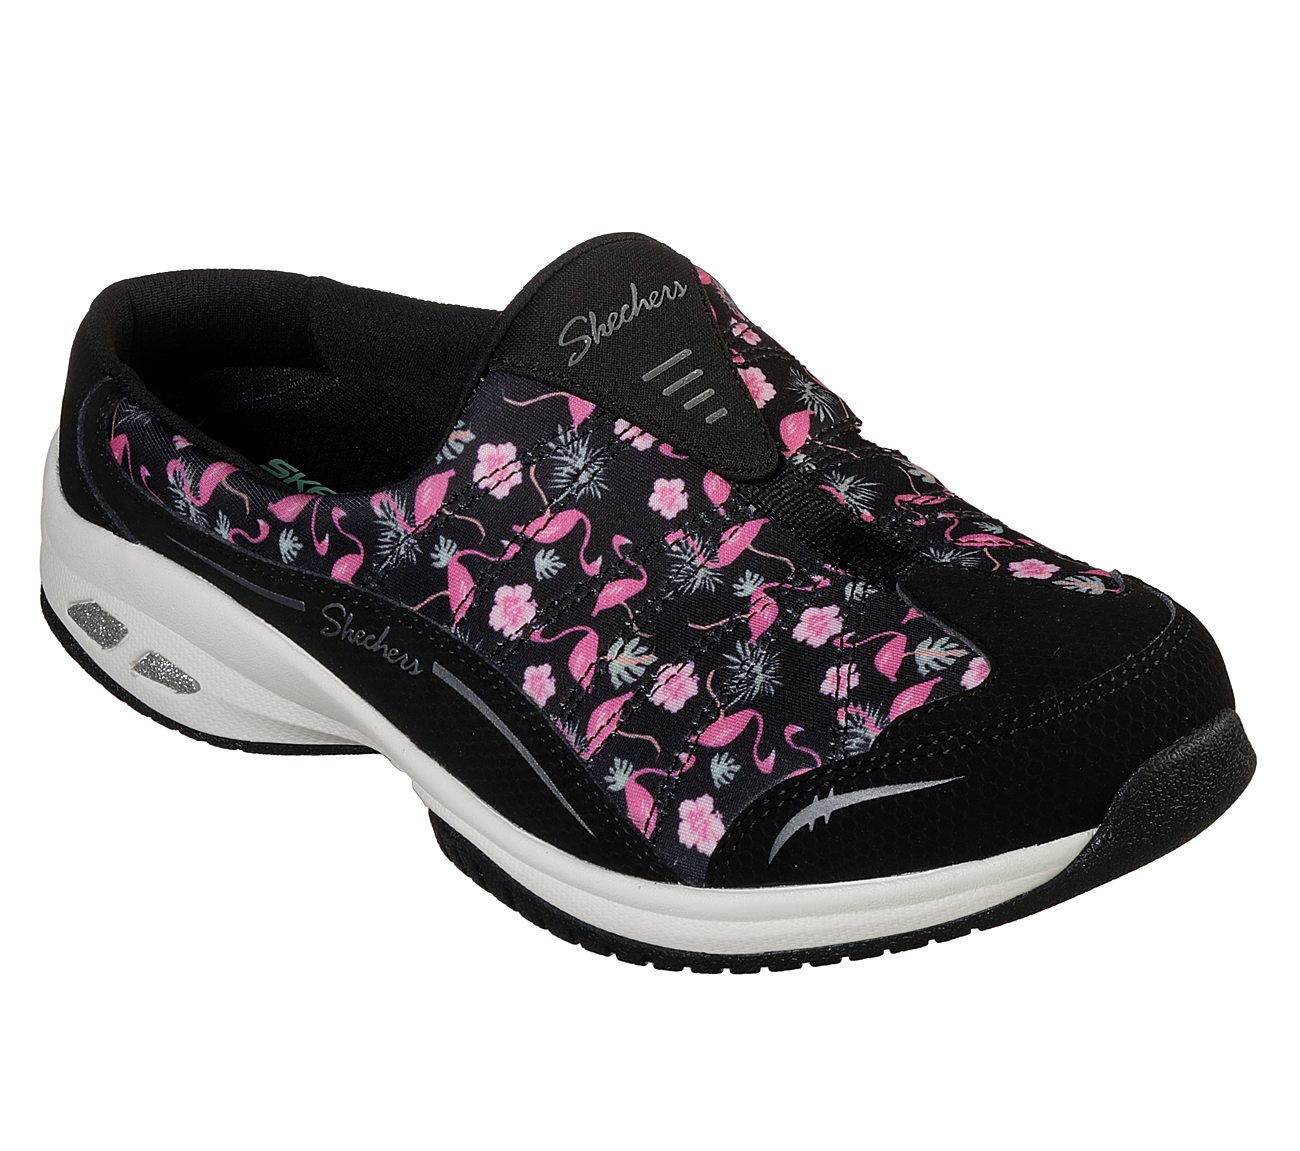 cbb36f33749d Buy SKECHERS Relaxed Fit  Commute Time - Flocking Fabulous Modern ...